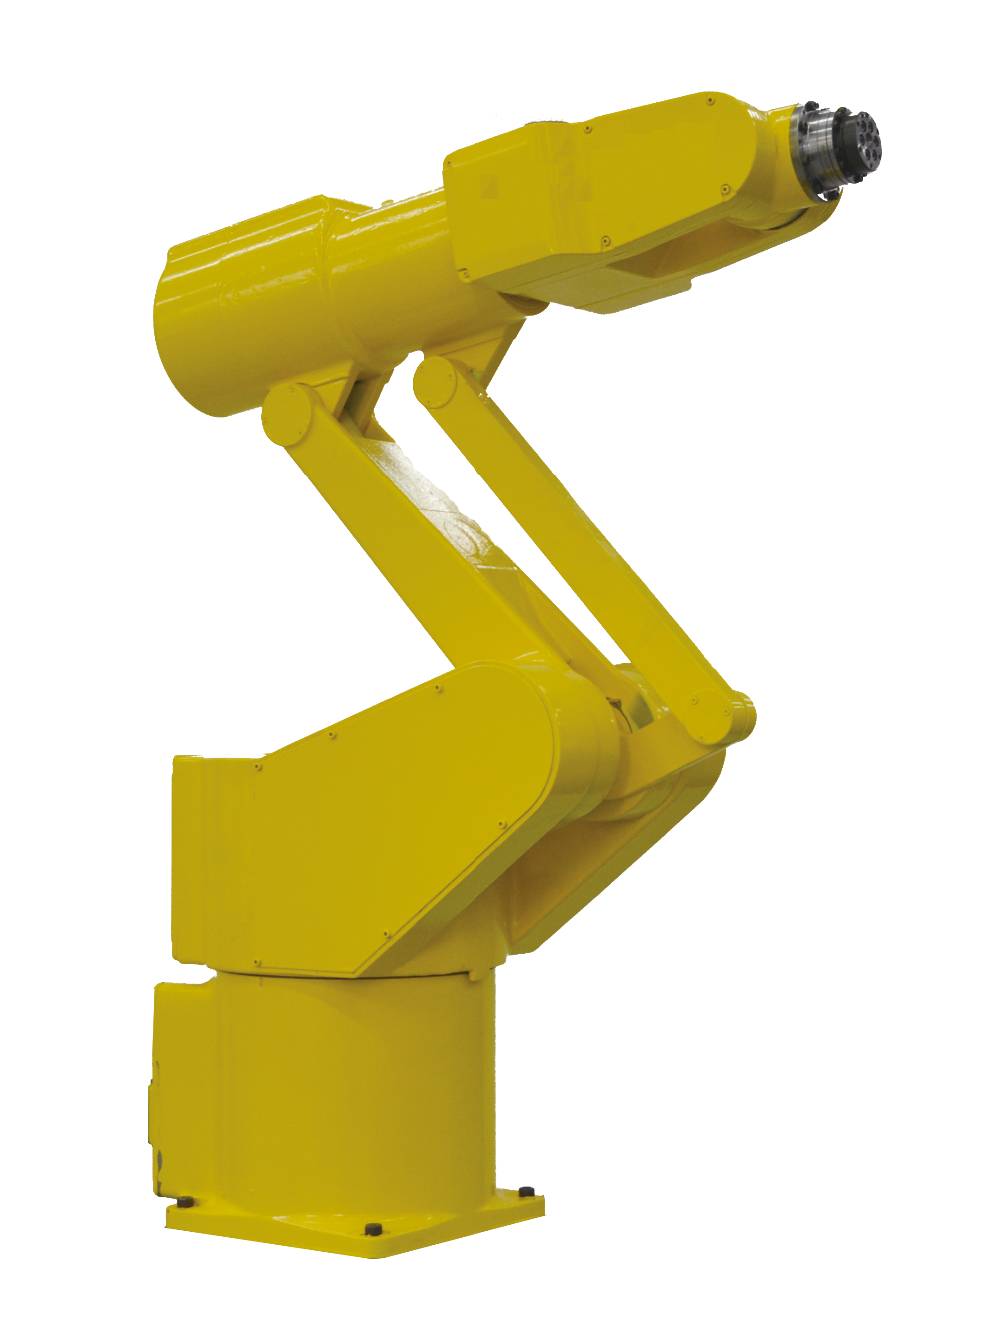 CWG050 CNC 6 Axis industrial robot arm